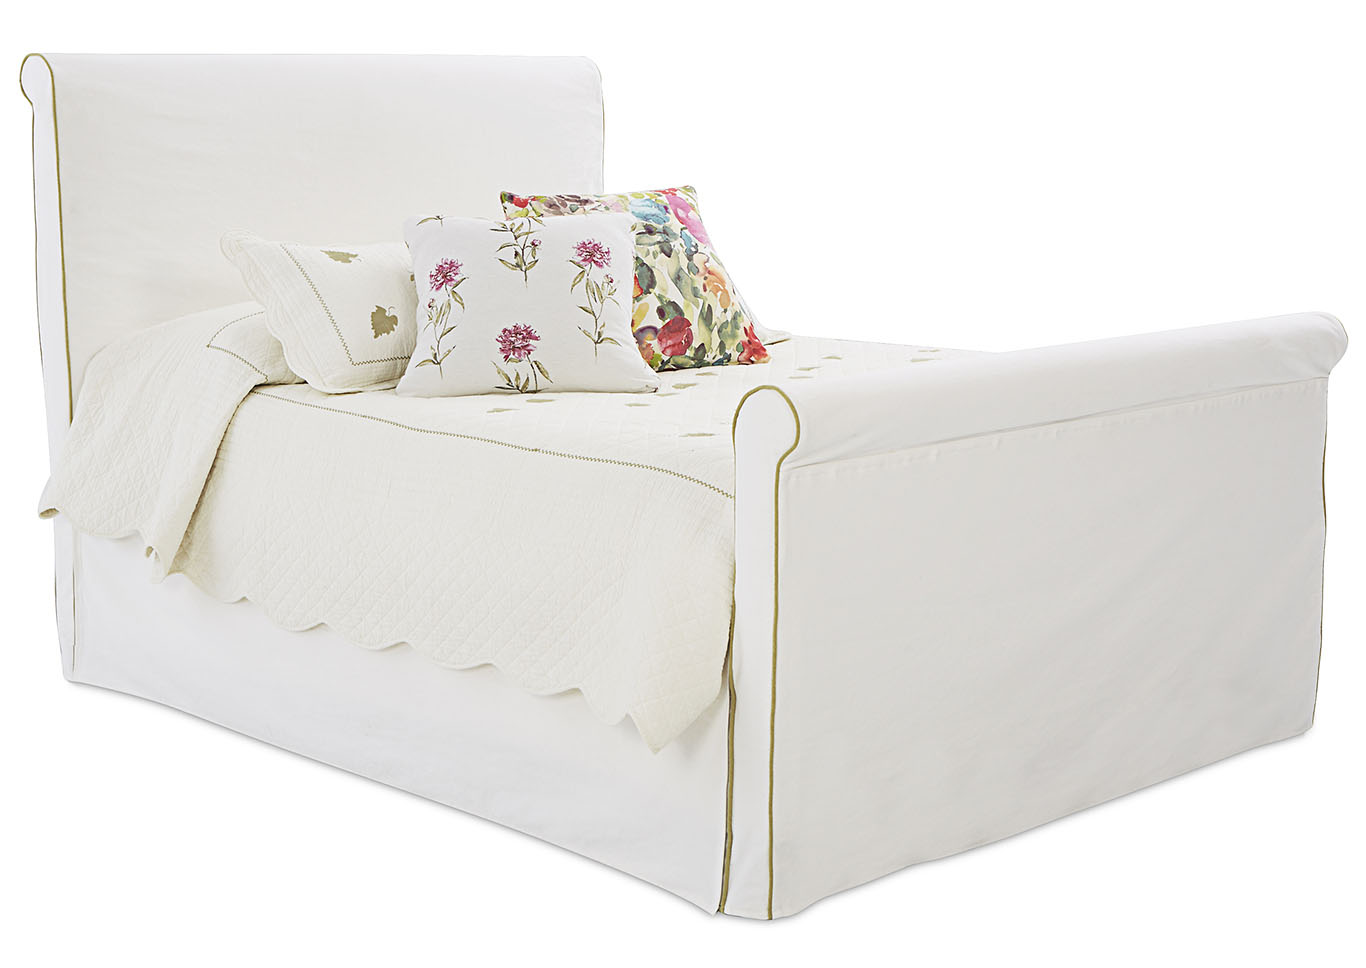 Midland White Fabric King Bed,Klaussner Home Furnishings